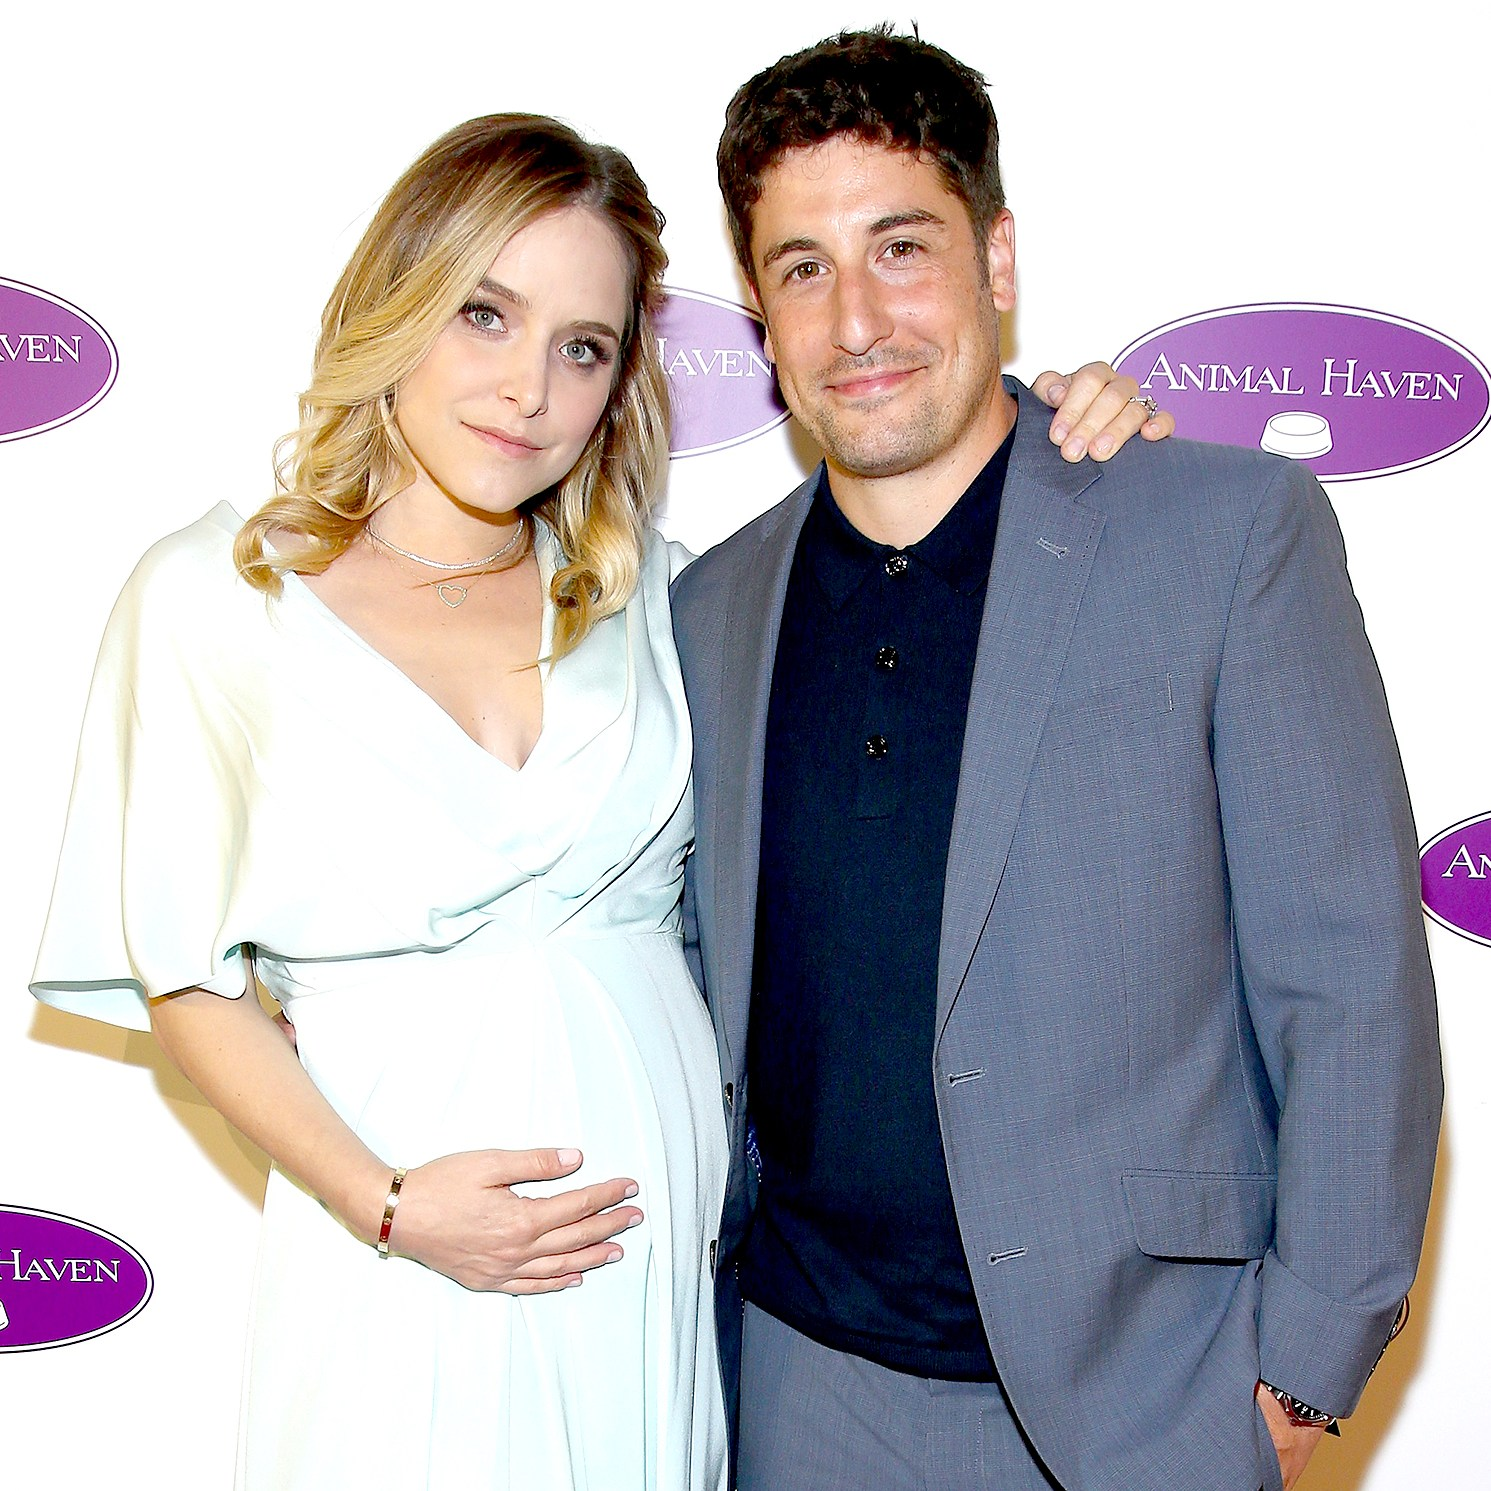 Jenny Mollen (L) and Jason Biggs attend the Animal Haven's 50th Anniversary Party at Capitale on June 14, 2017 in New York City.